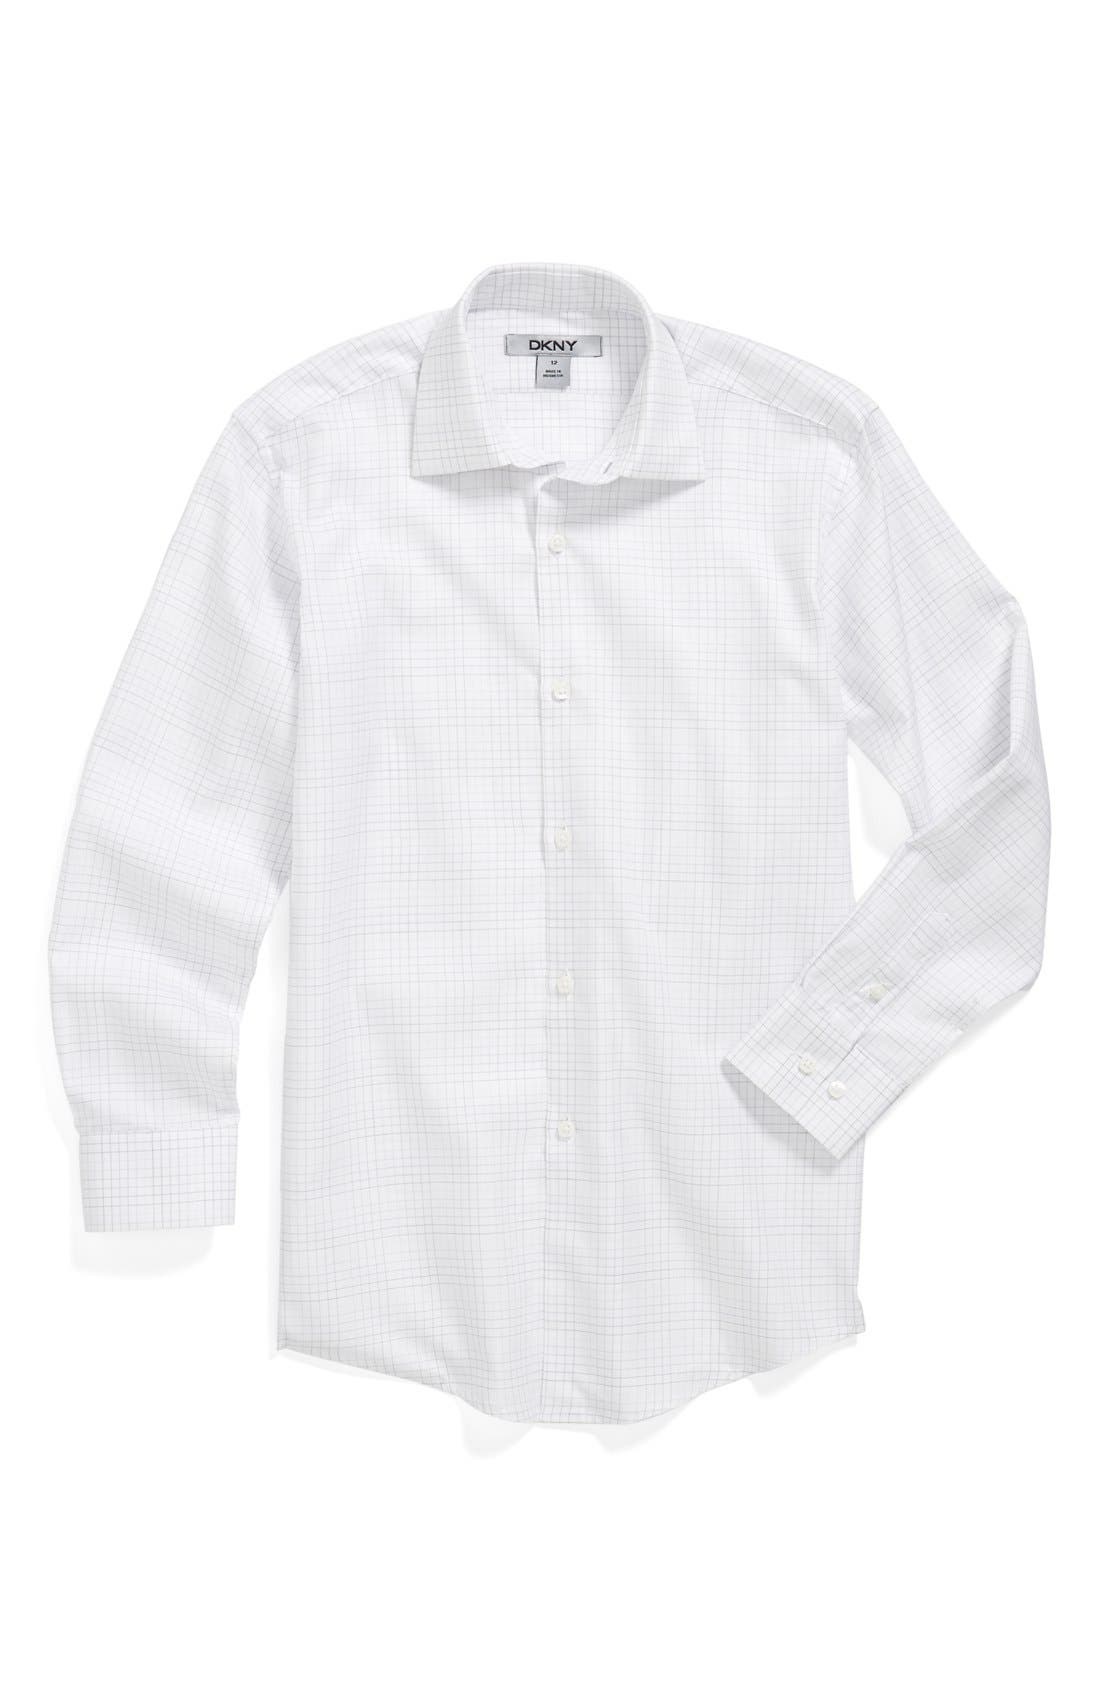 Main Image - DKNY Check Dress Shirt (Big Boys)